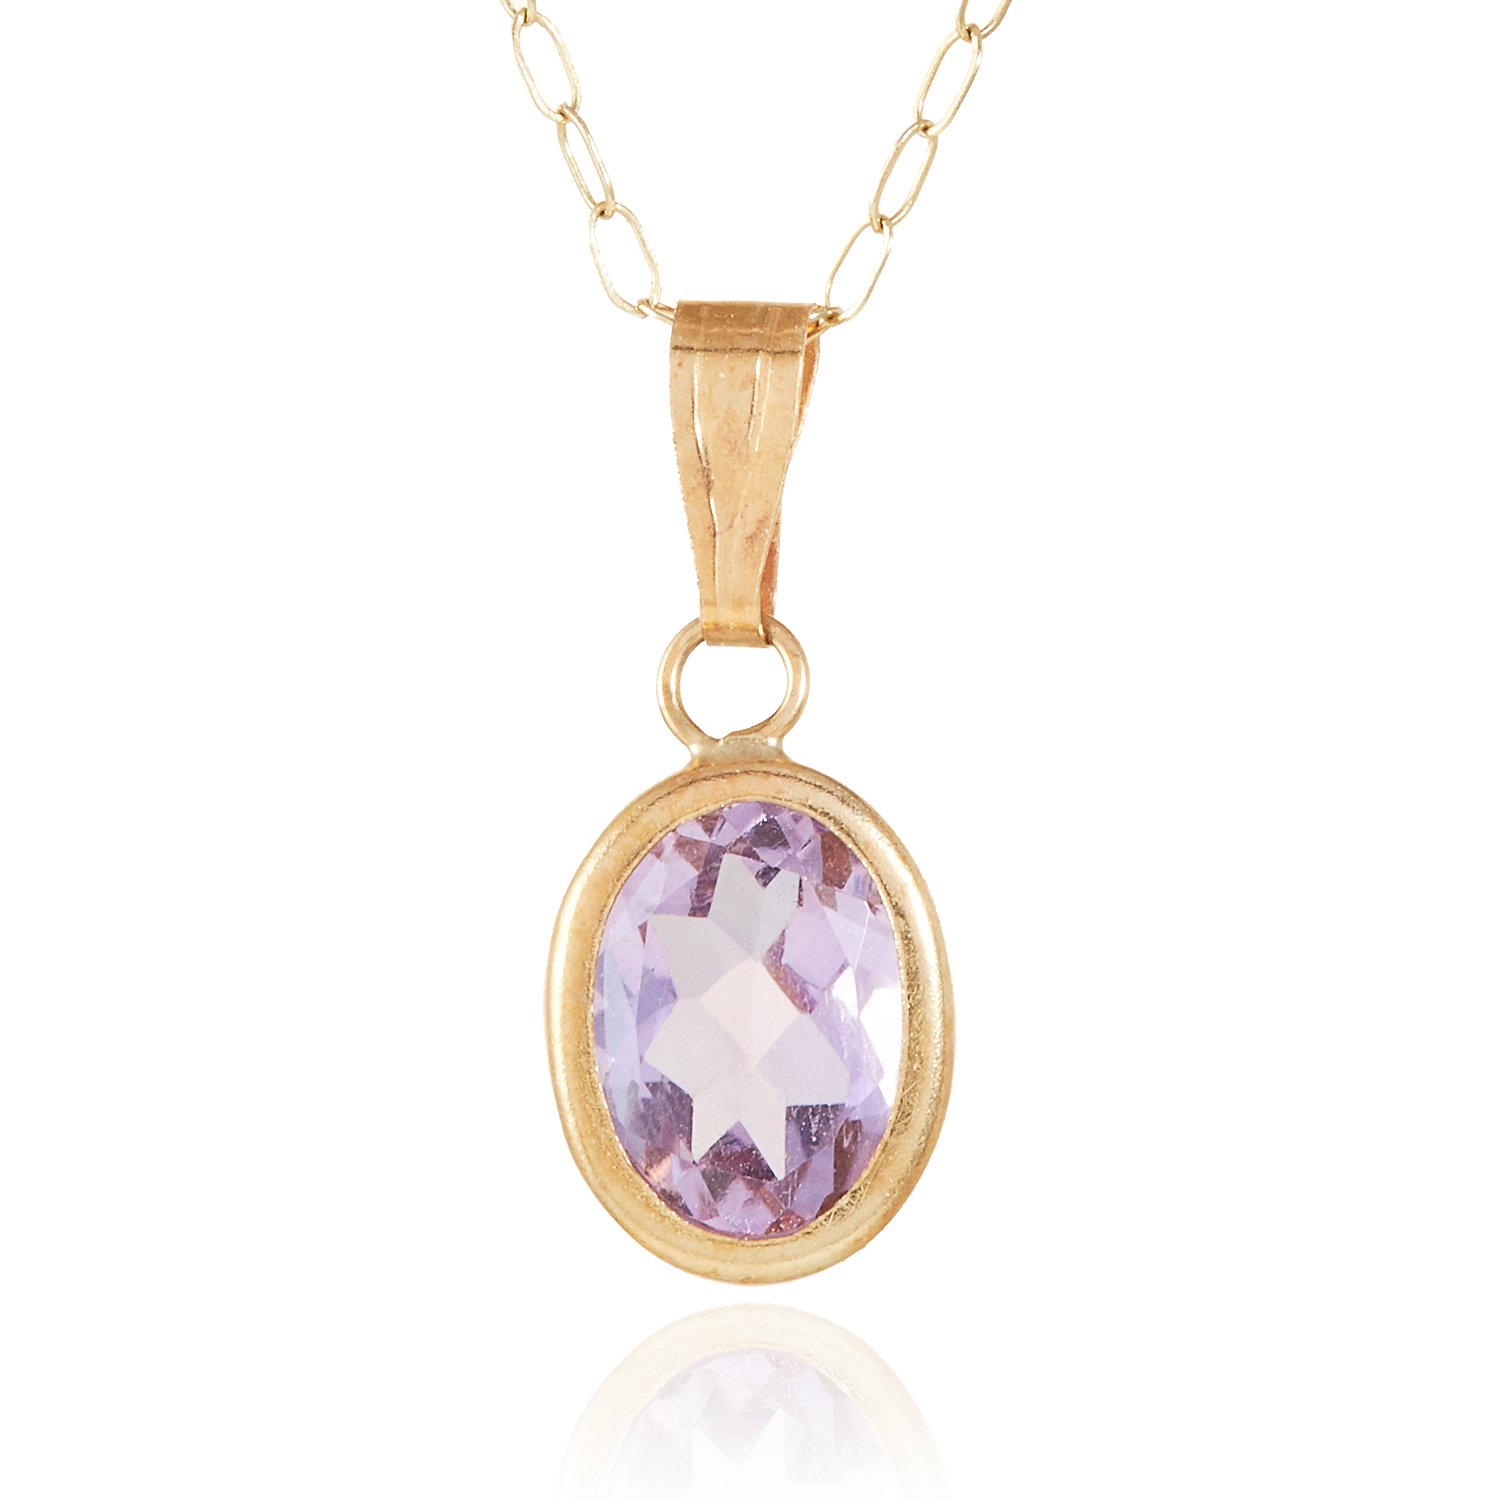 AN AMETHYST PENDANT in yellow gold, set with an oval cut amethyst, stamped 375, 0.6g.